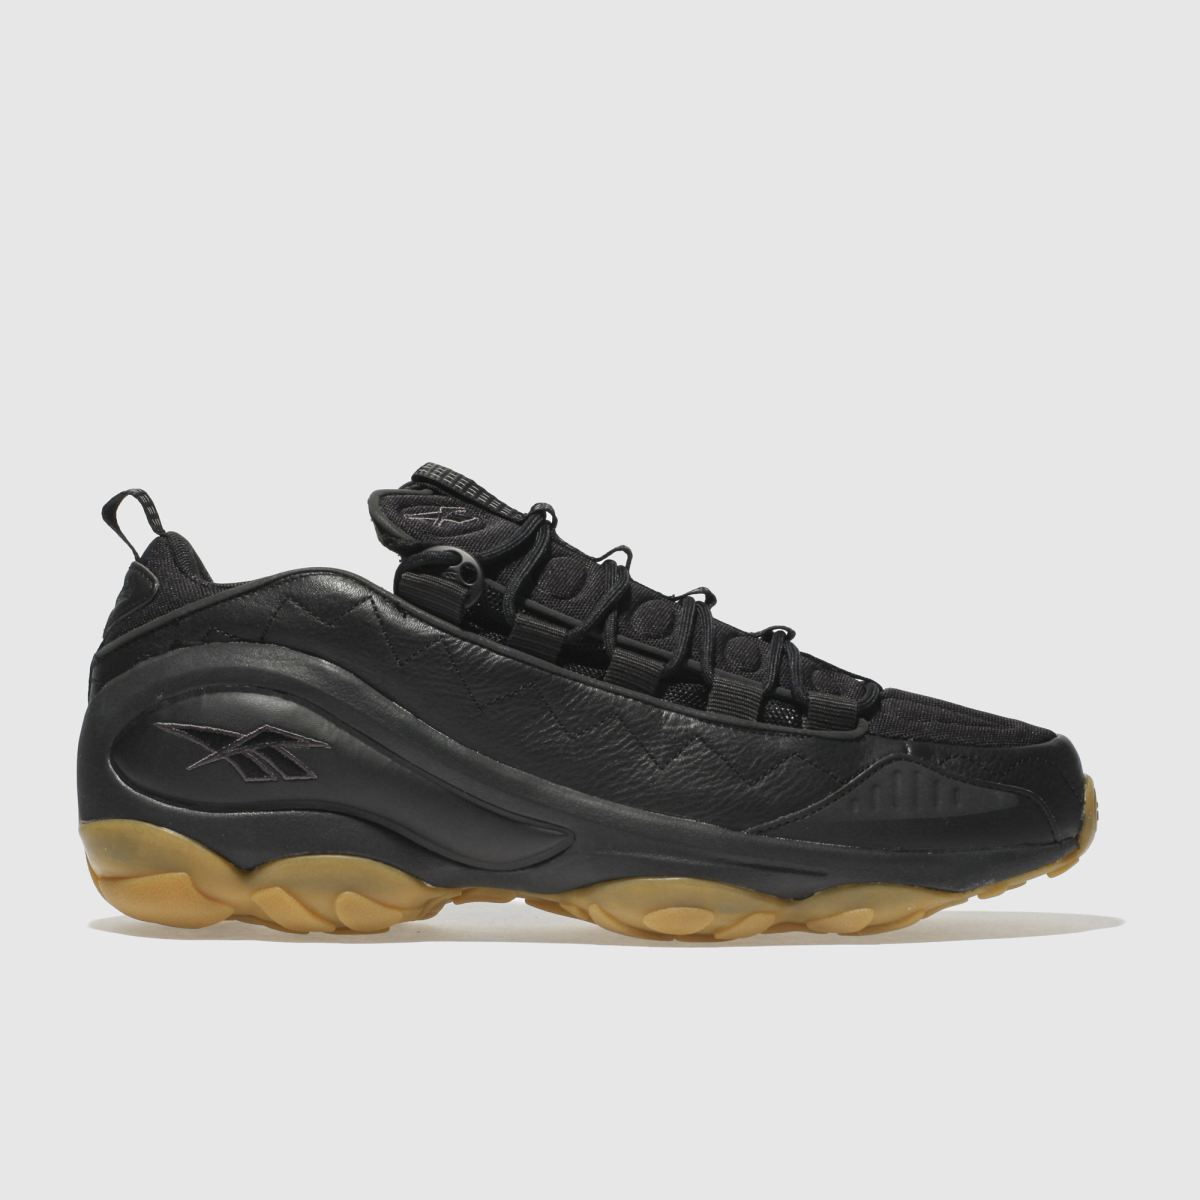 Reebok Black Dmx Run 10 Trainers